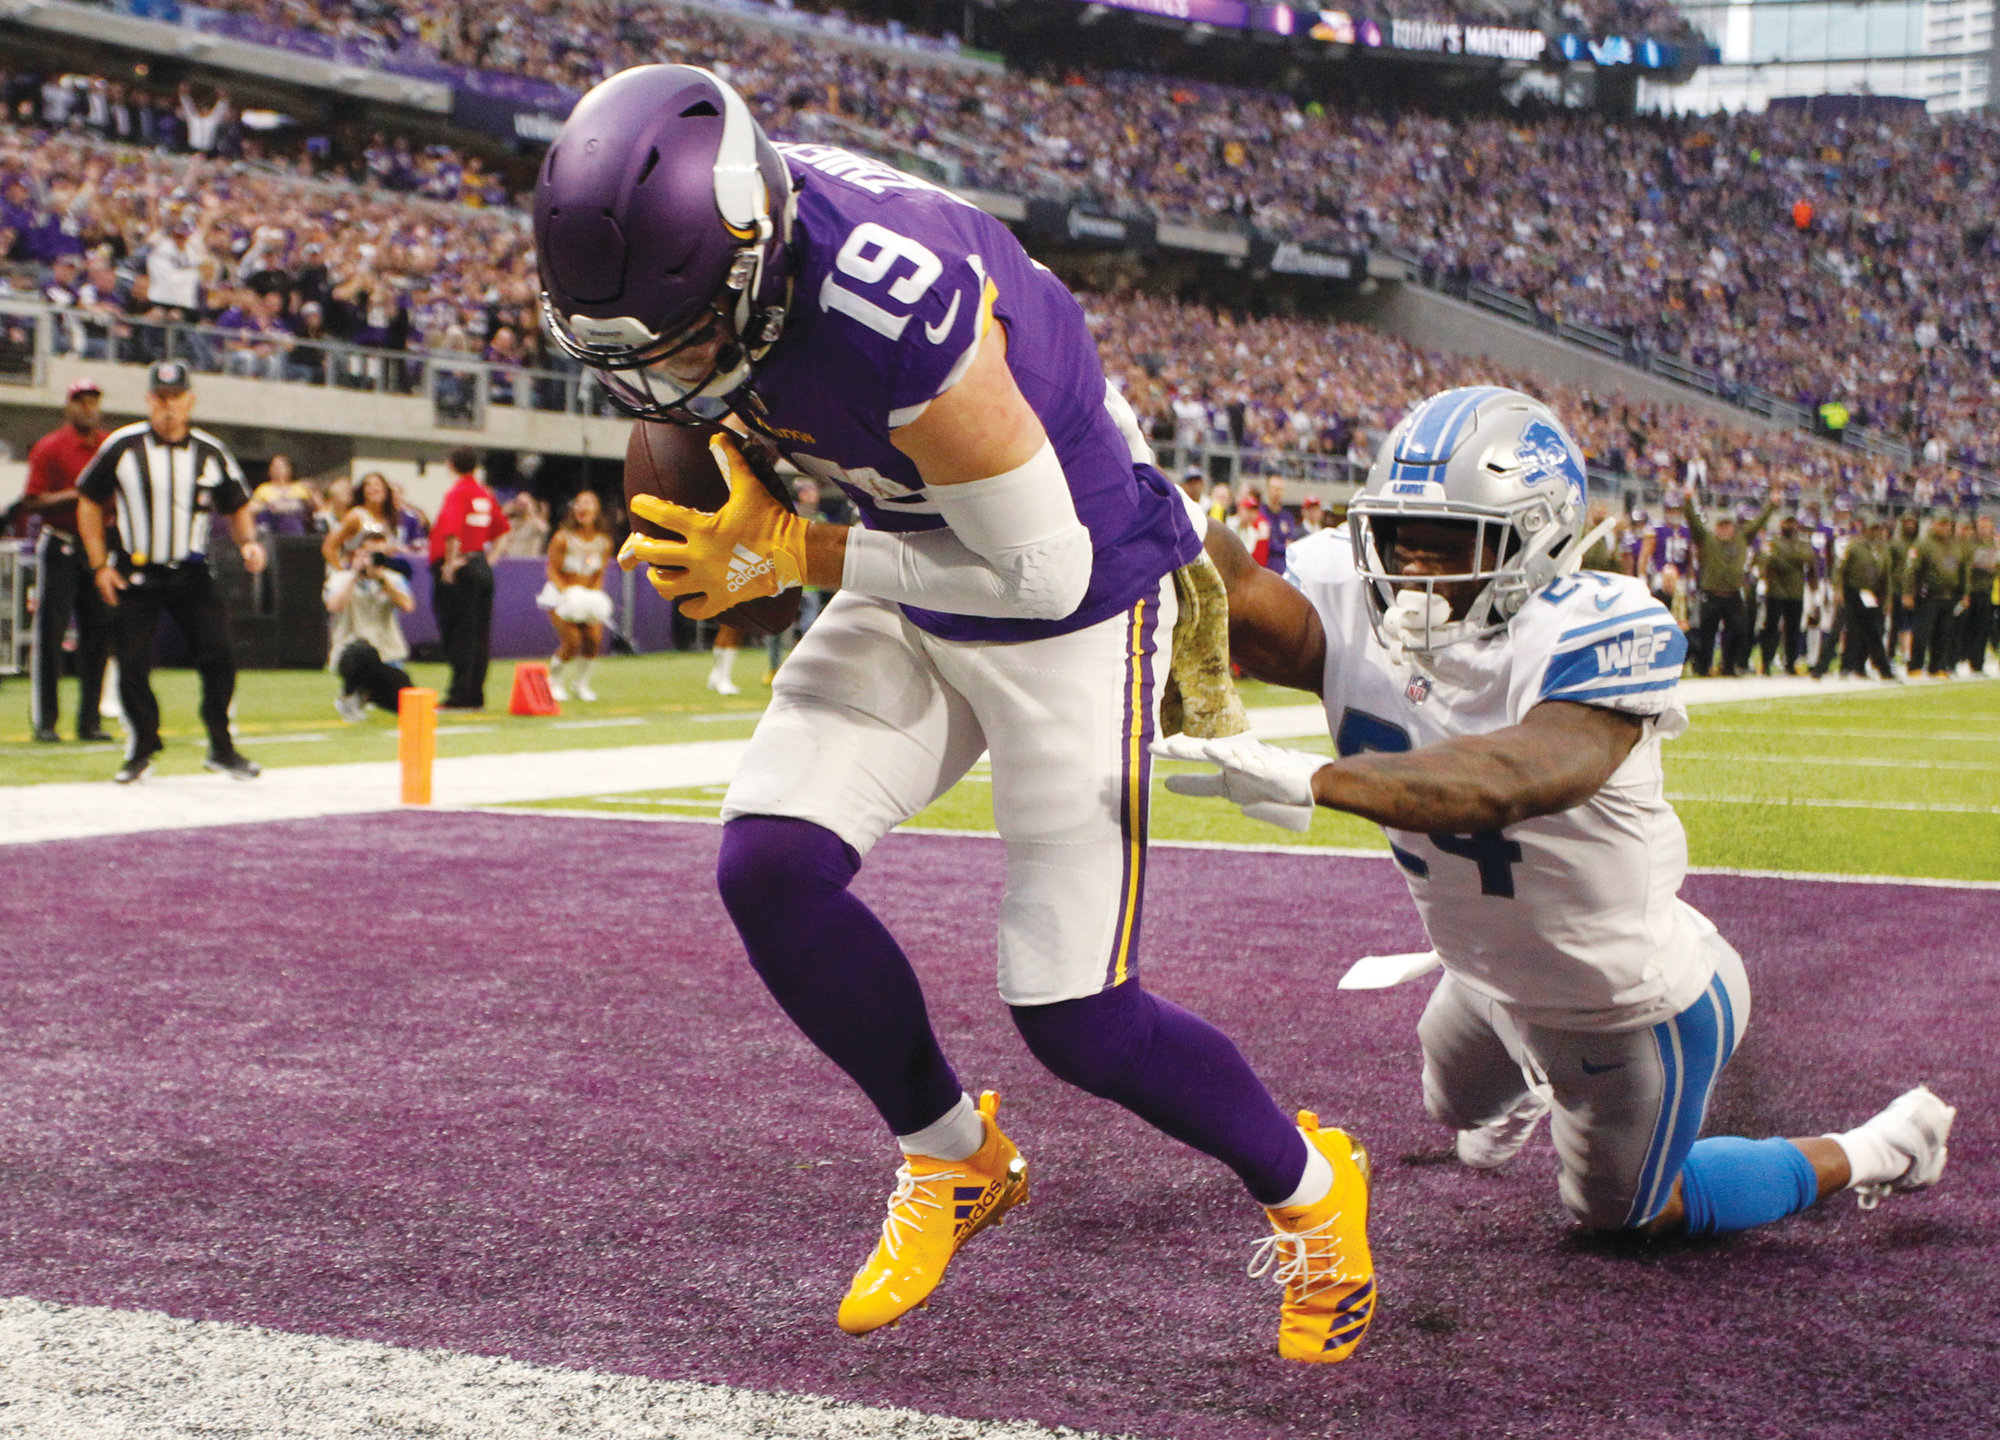 FILE - In this Nov. 4, 2018, file photo, Minnesota Vikings wide receiver Adam Thielen (19) catches a 2-yard touchdown pass ahead of Detroit Lions cornerback Nevin Lawson, right, during the first half of an NFL football game in Minneapolis. Thielen became the first player to have eight 100-yard receiving games to start a season, tying Calvin Johnson for the longest streak of such games. The former undrafted wide receiver has 78 catches for the Vikings. He's on pace to challenge Marvin Harrison's